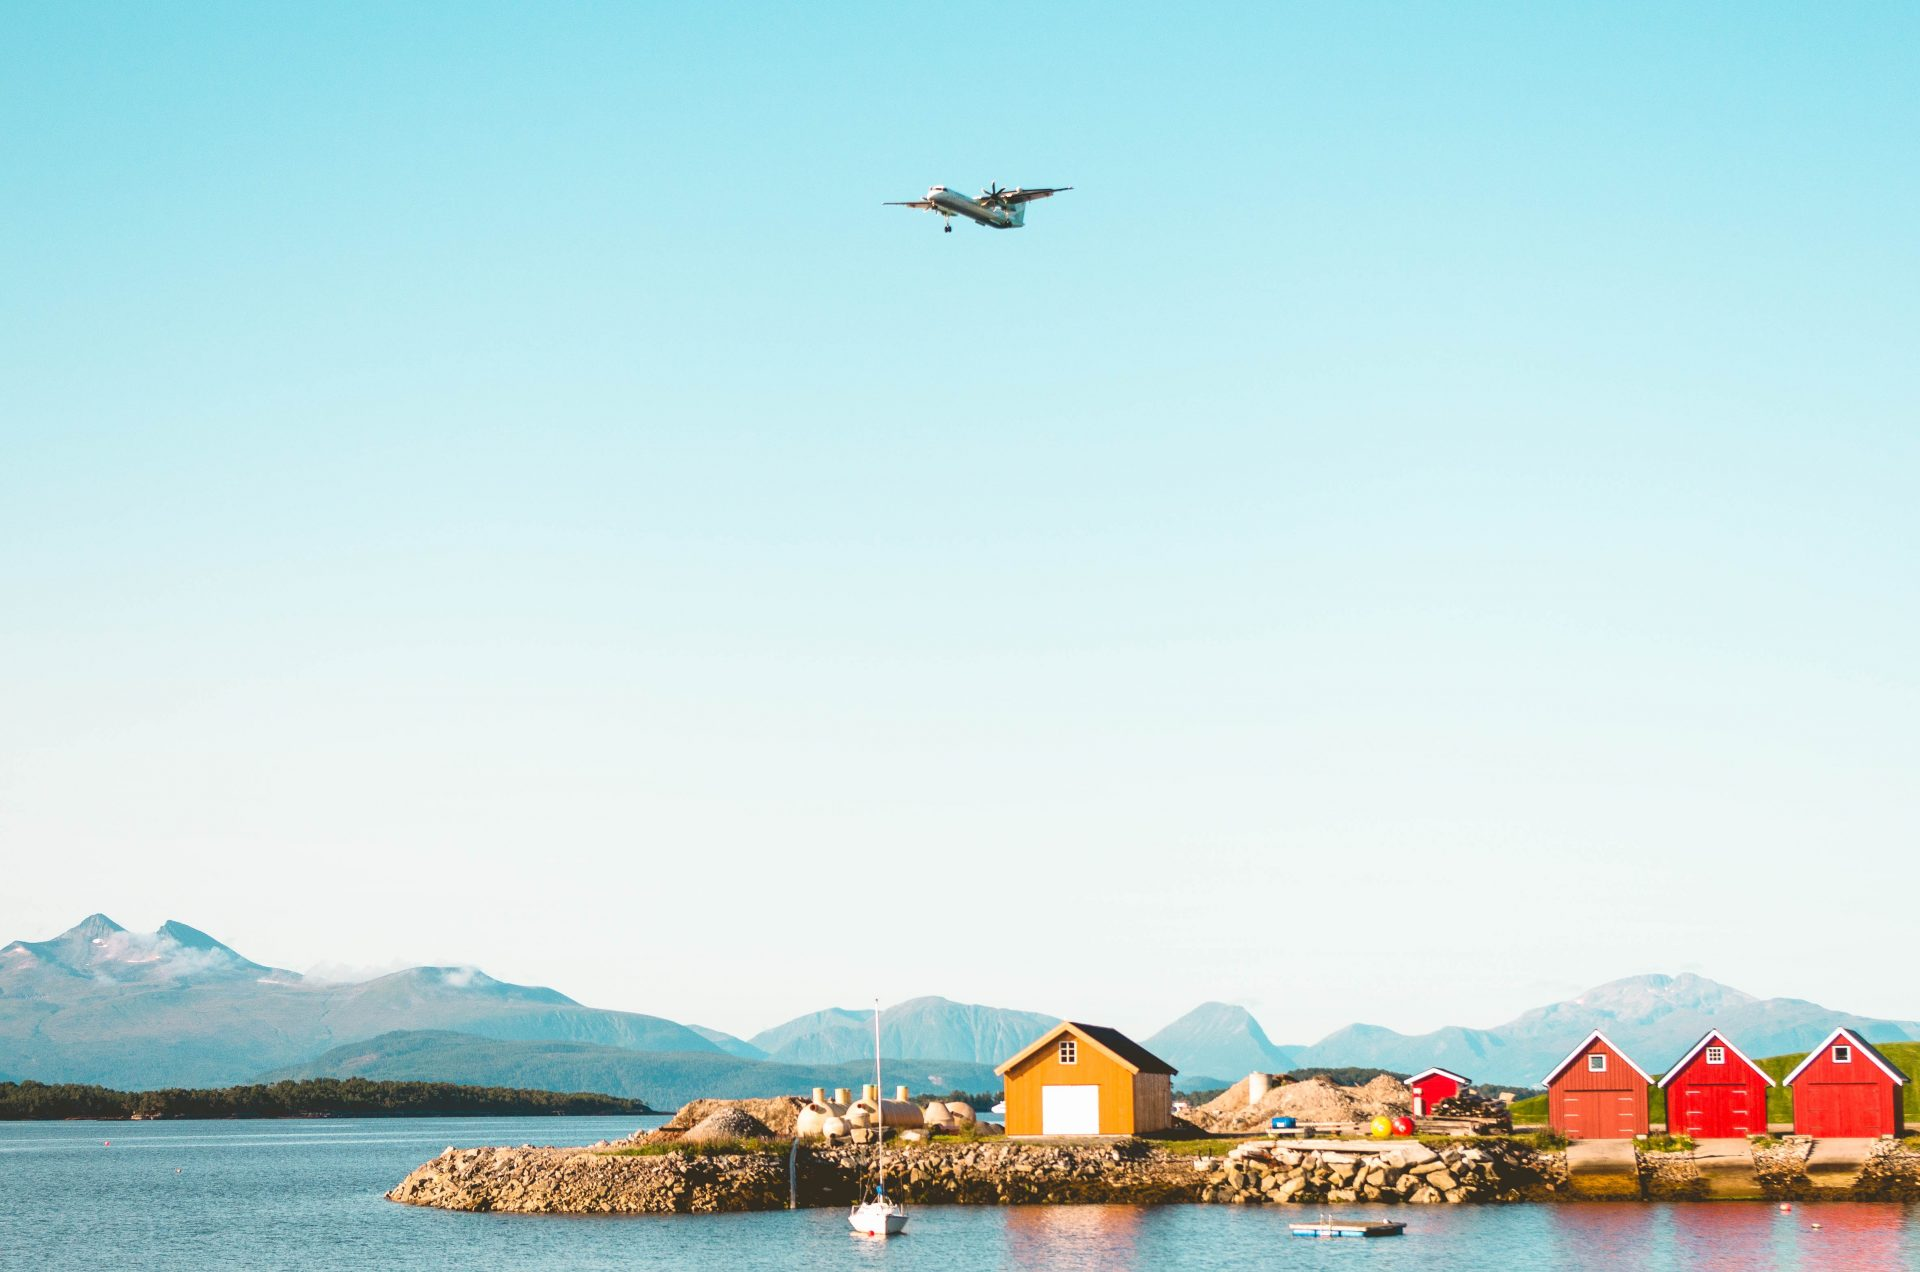 Plane flying over the fjord in Molde in Norway